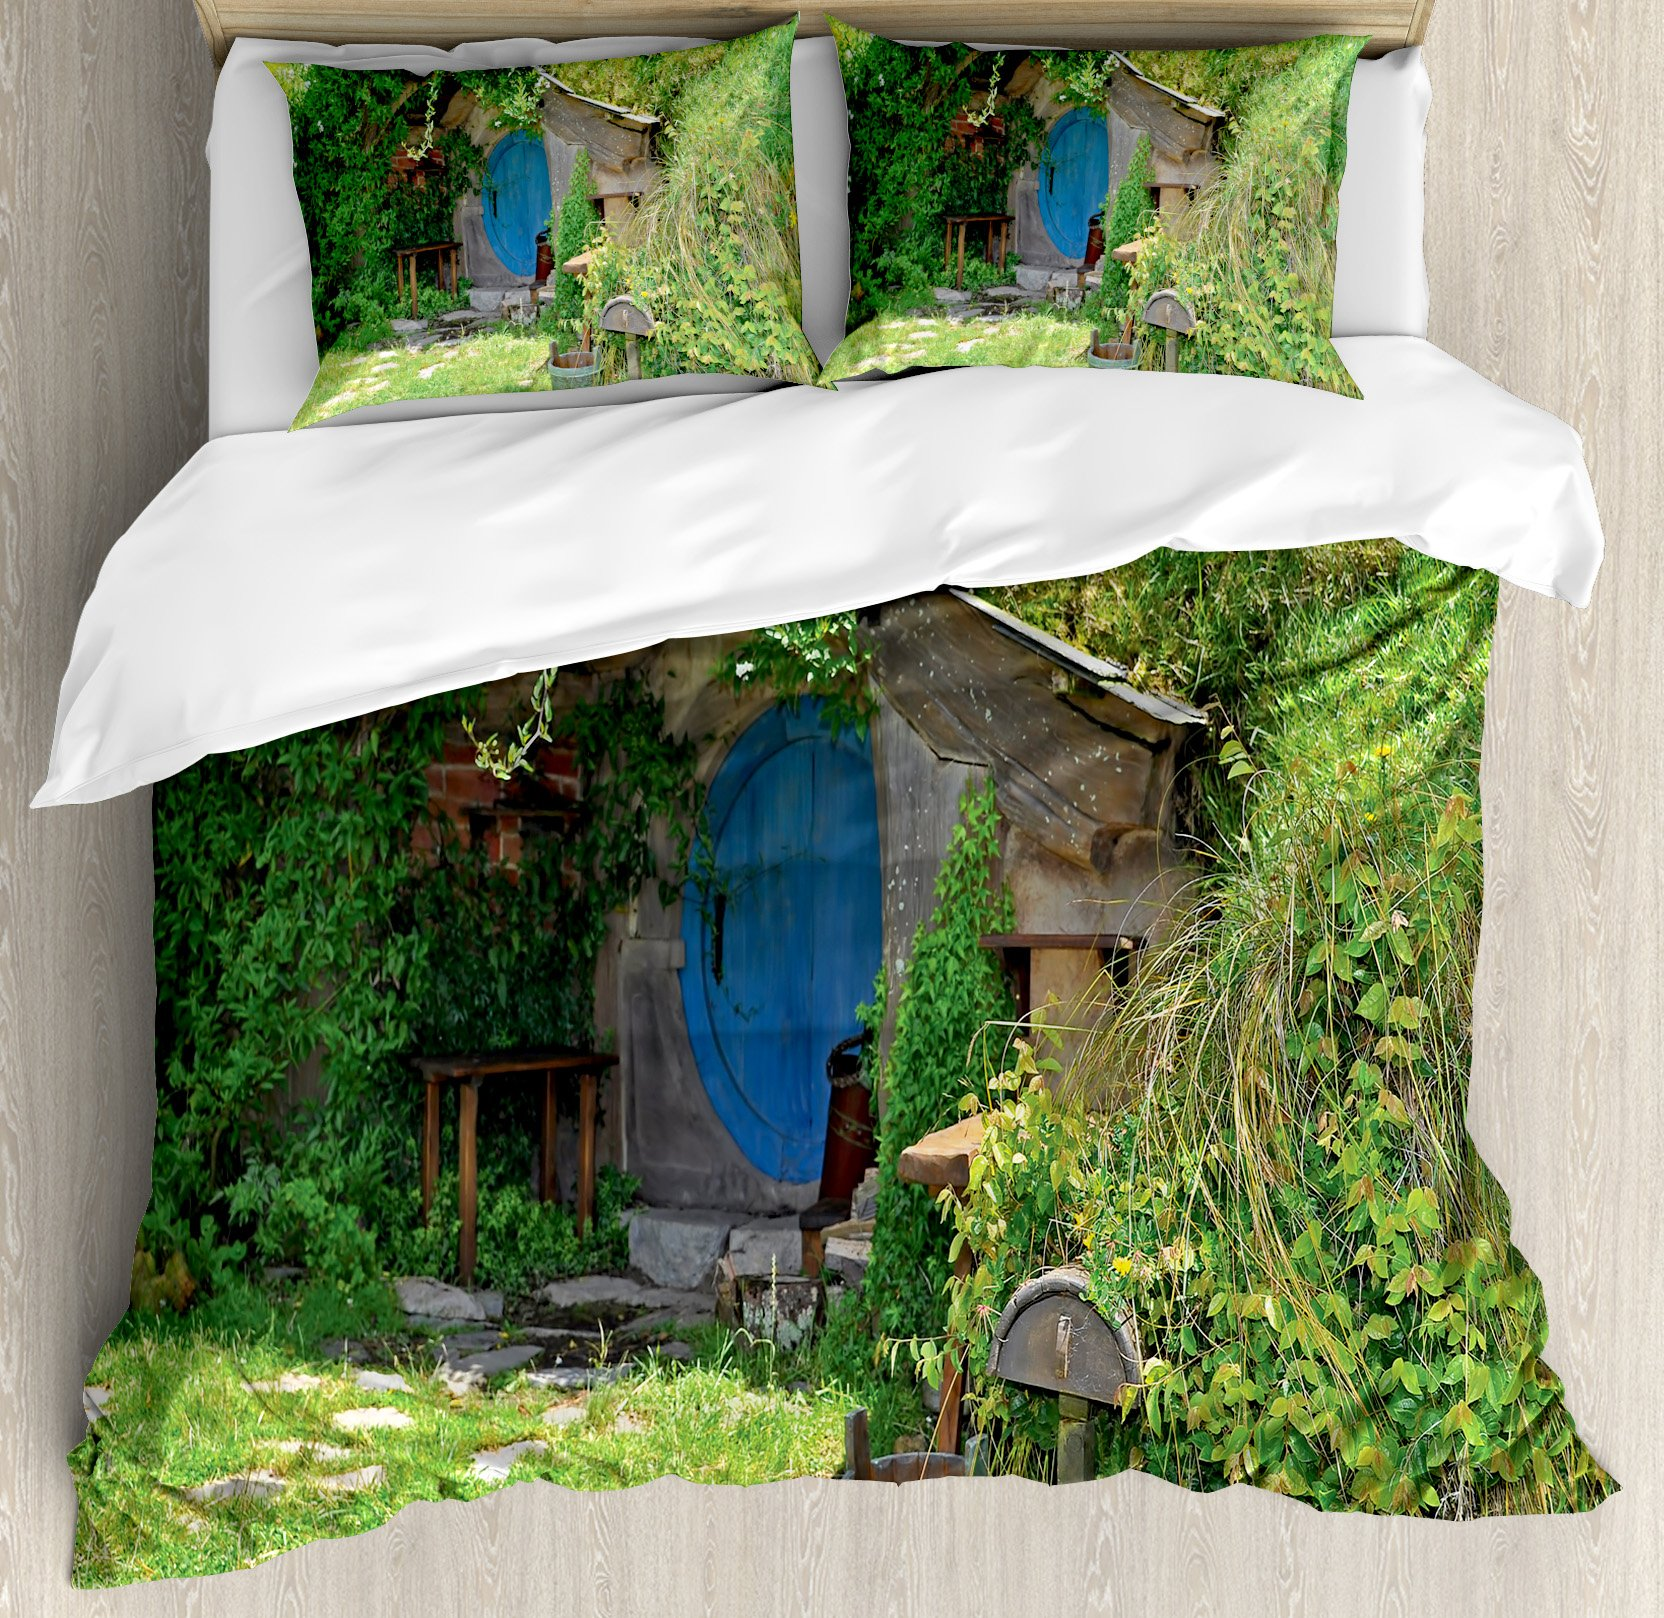 Hobbits Duvet Cover Set by Ambesonne, Fantasy Hobbit Land House in Magical Overhill Woods Movie Scene New Zealand, 3 Piece Bedding Set with Pillow Shams, Queen / Full, Green Brown Blue